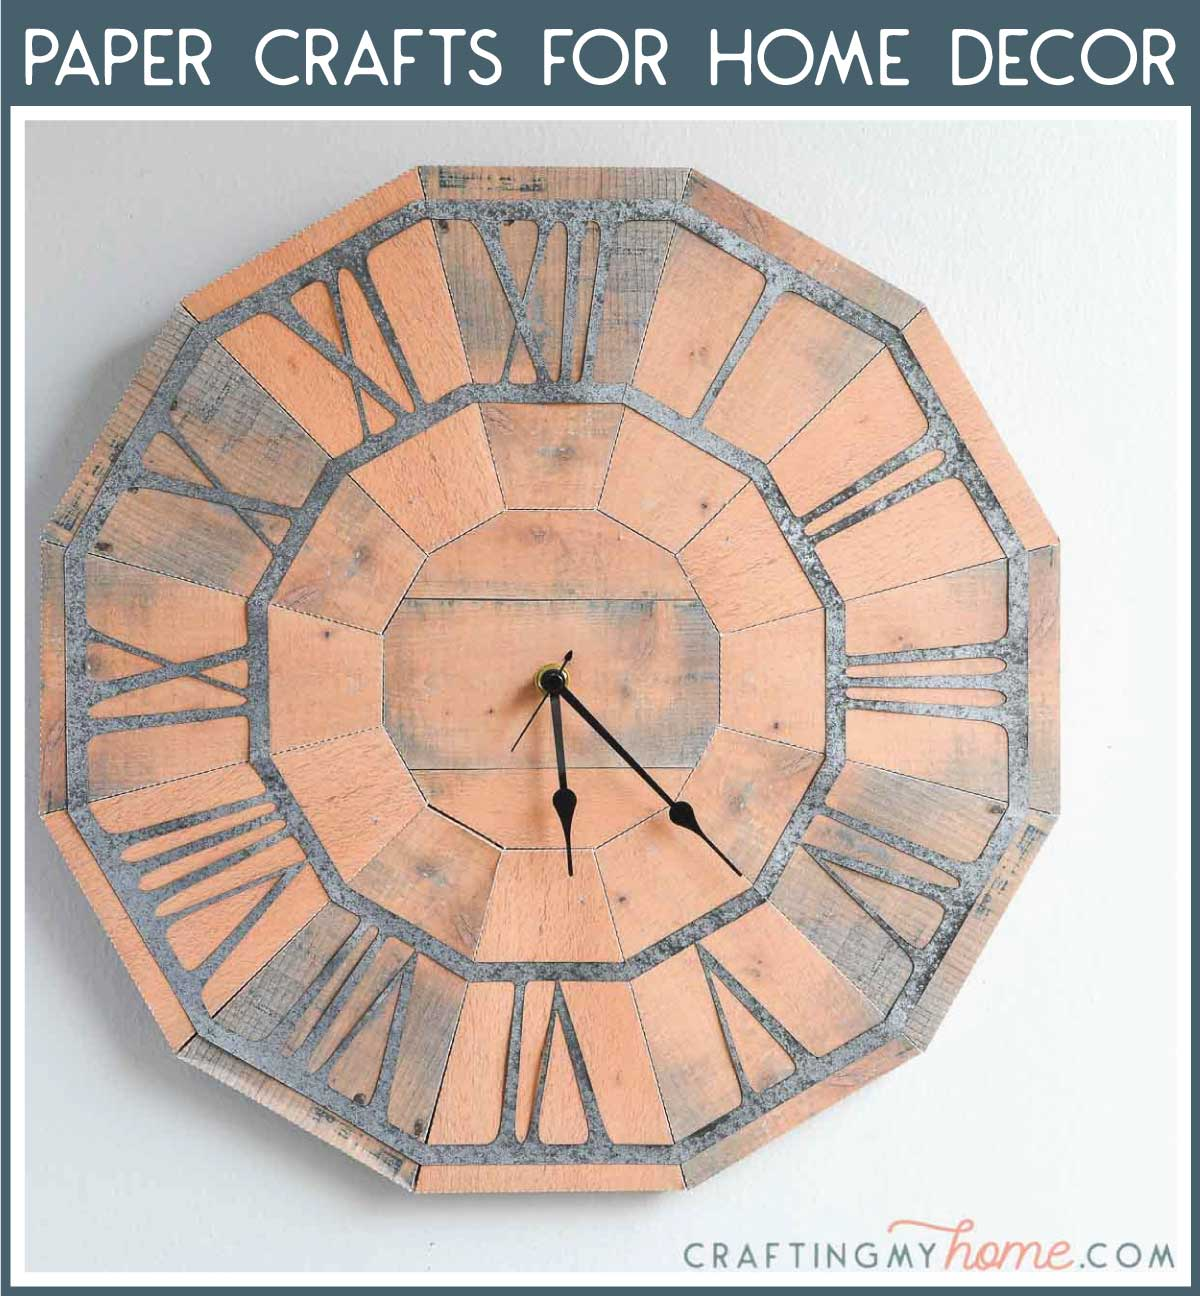 3D working clock made from paper with a navy box around it and white text: Paper Crafts for Home Decor.